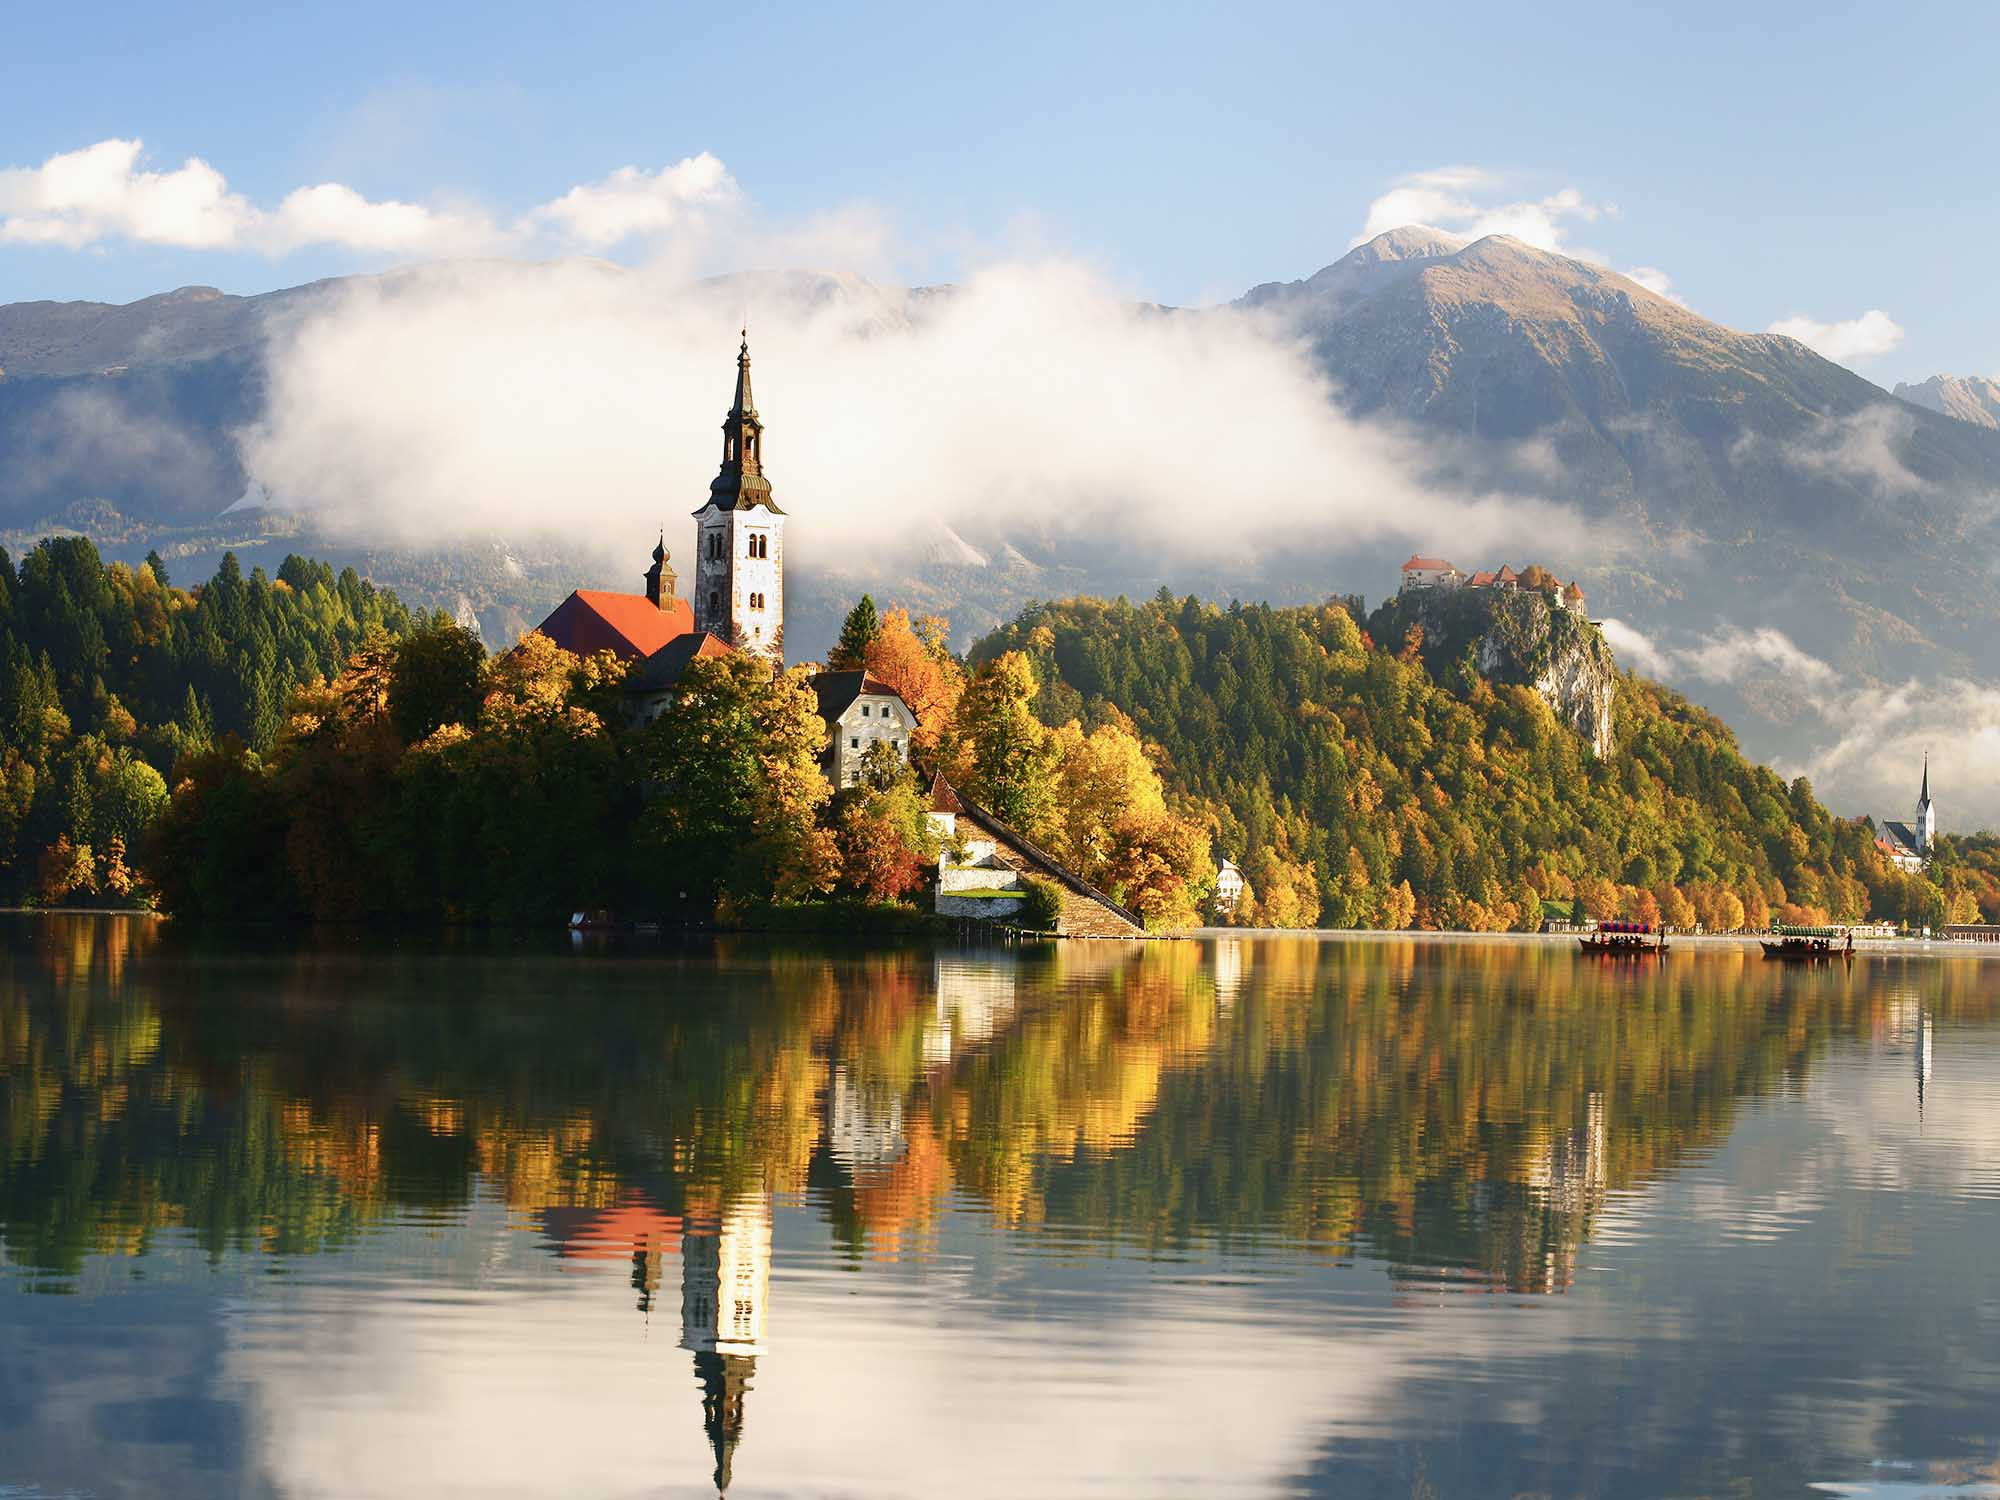 Rendezvous with potica at Bled island